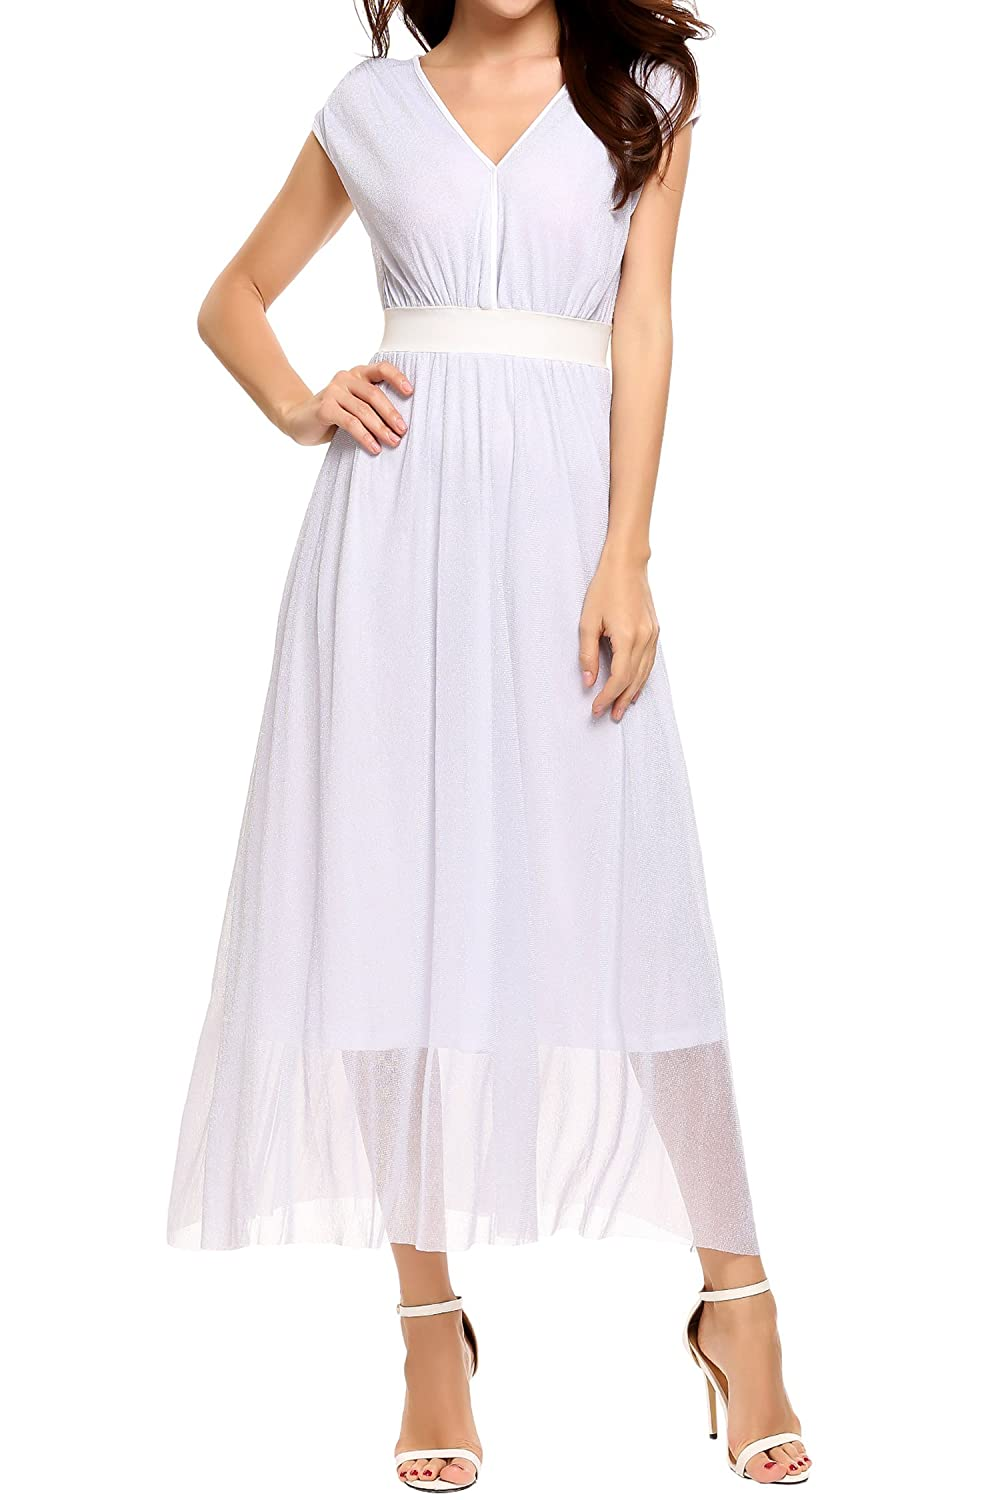 Meaneor Women's Metallic Sparkle V Neck Sleeveless Fit and Flare Pleated Party Dress, White, M #AMH010429_W_M